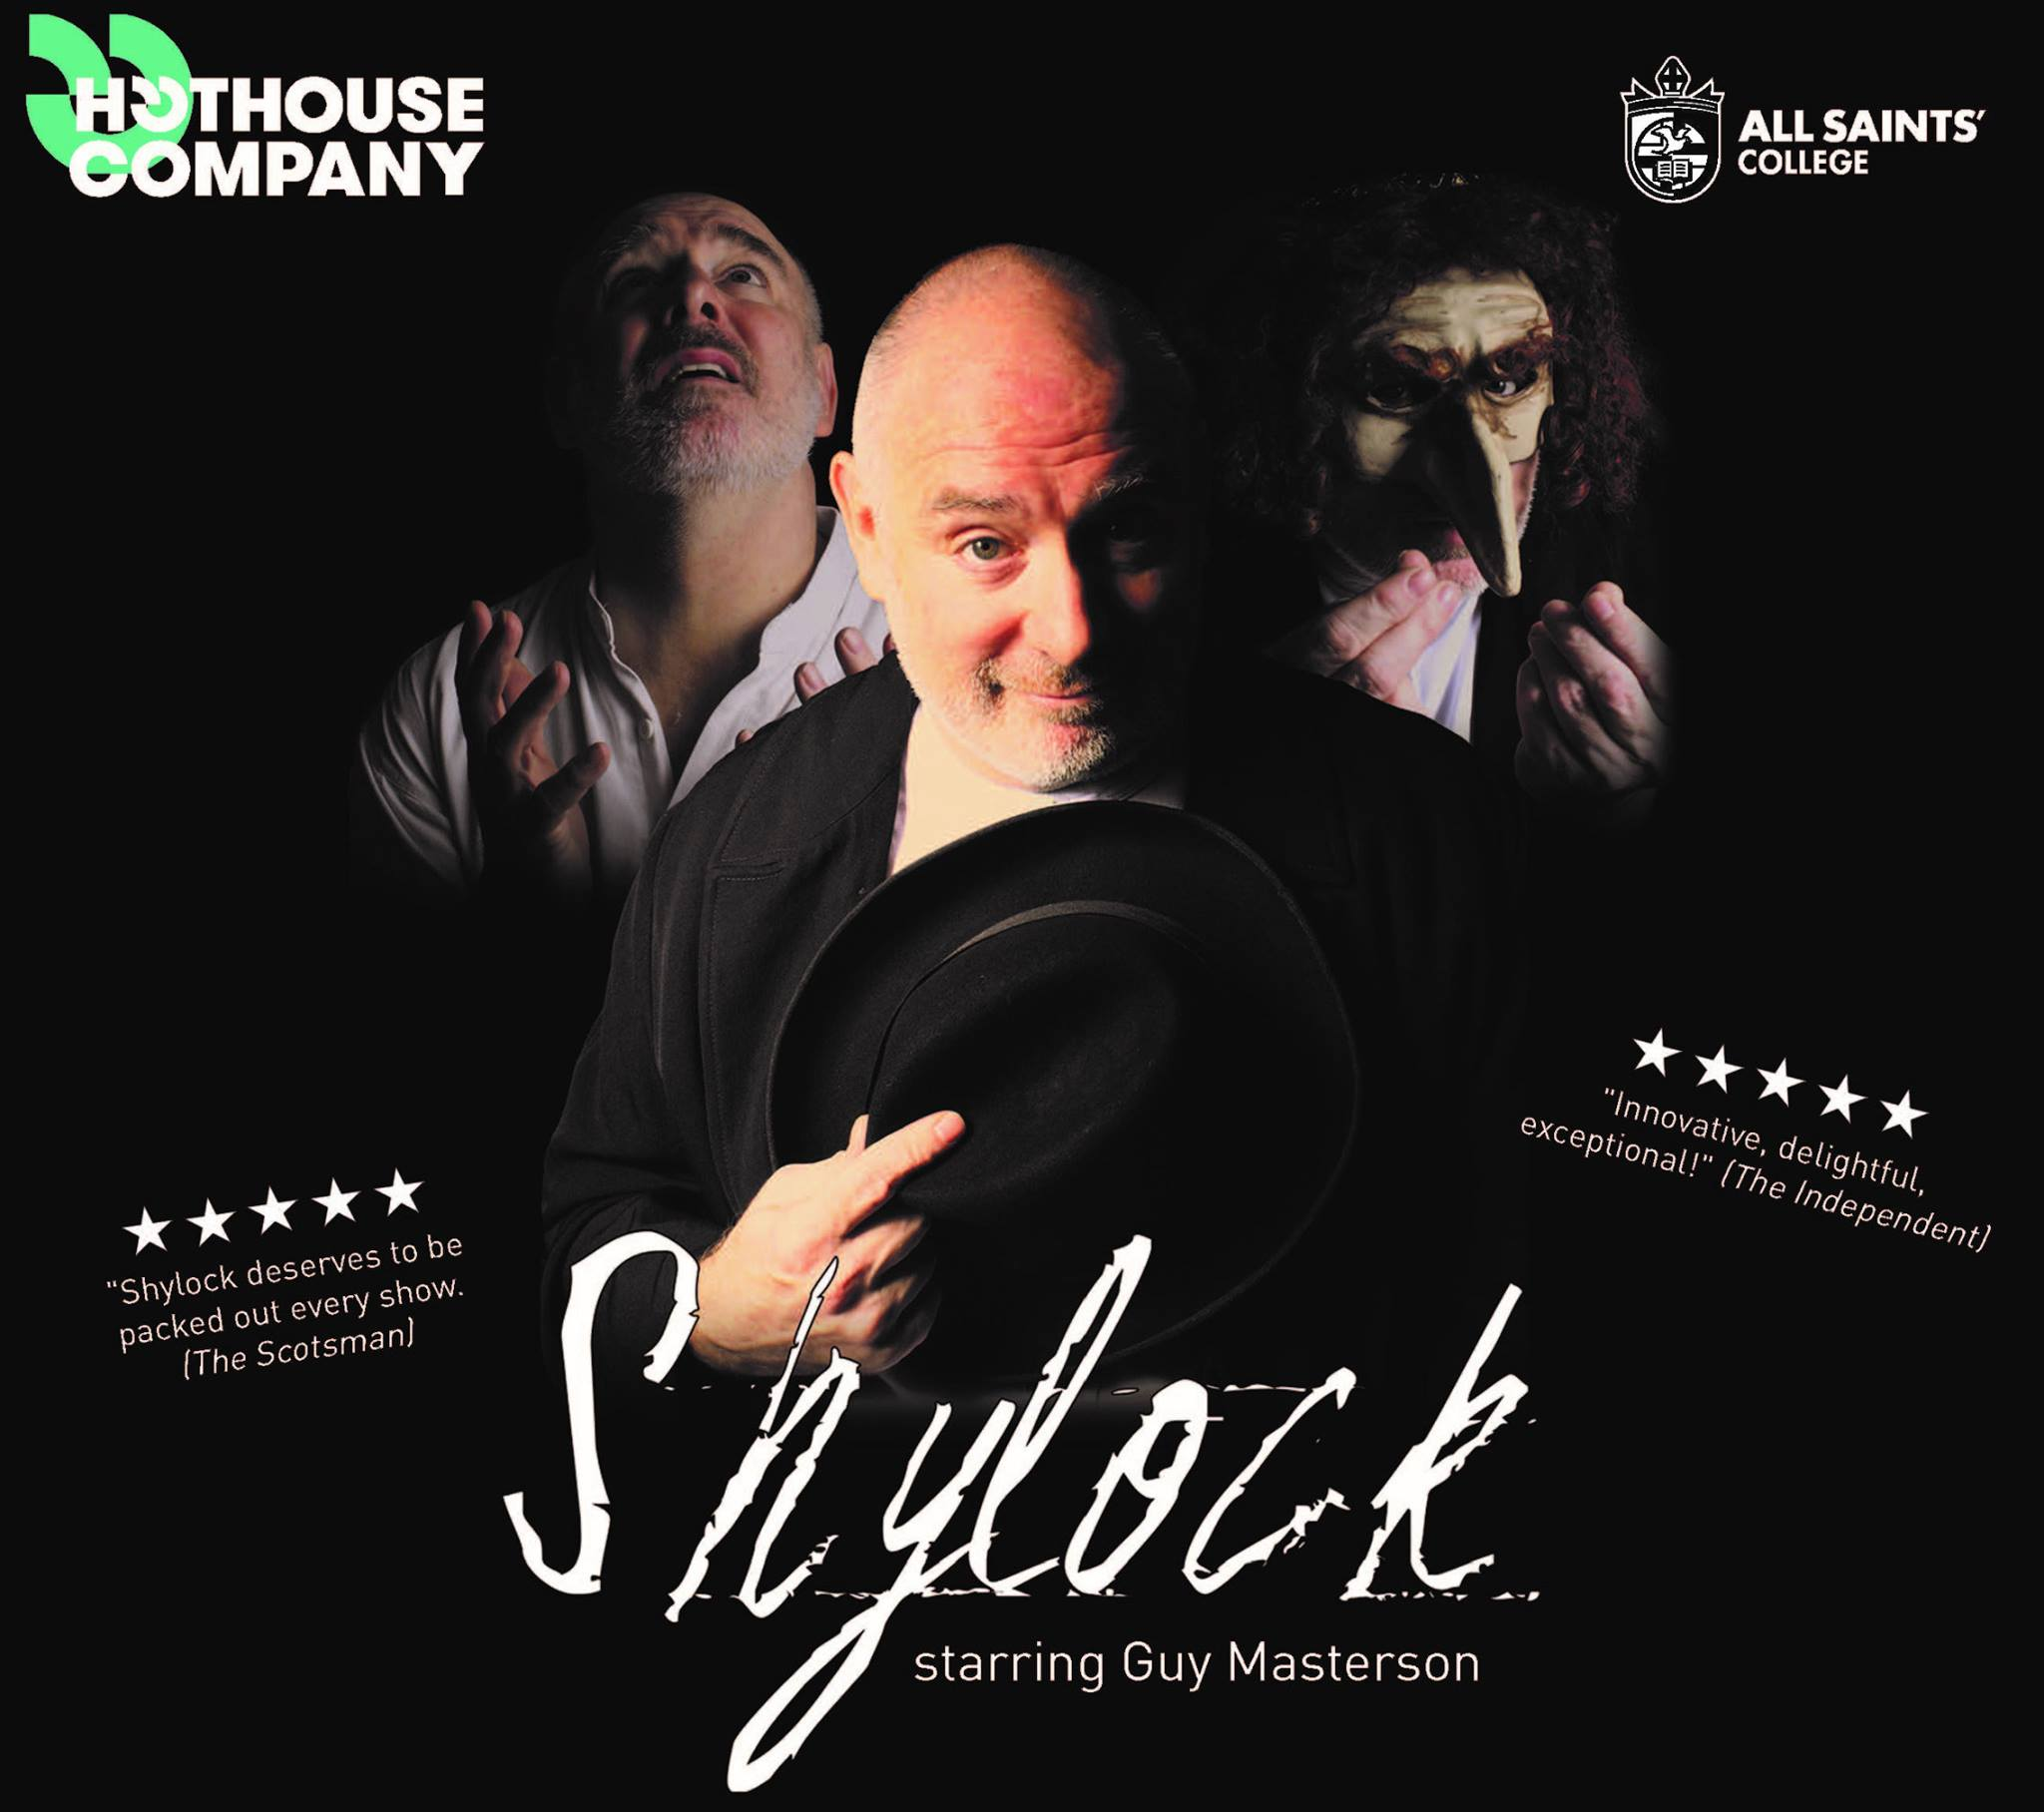 All Saints' College Centre for Performing Arts presents Shylock